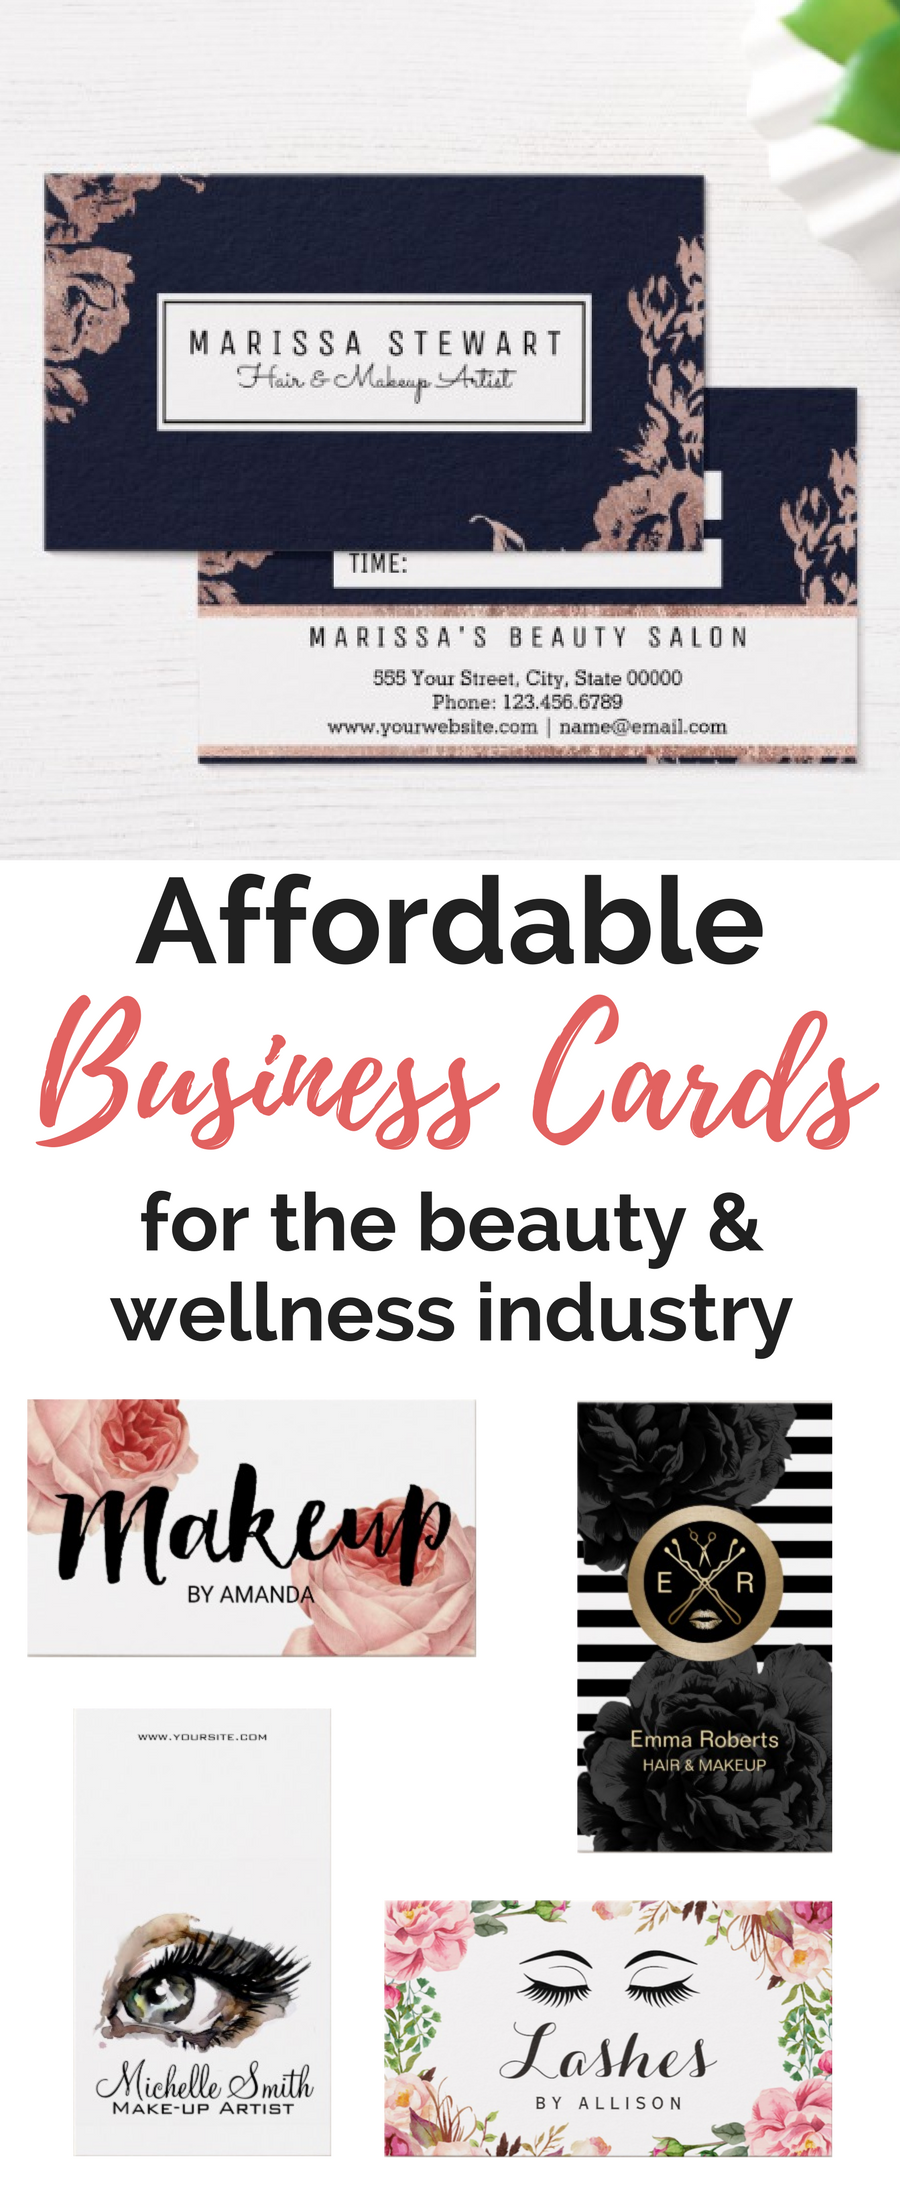 Affordable Business Cards For Salons Spas Order Here Esthetician Business Cards Salon Business Cards Spa Business Cards